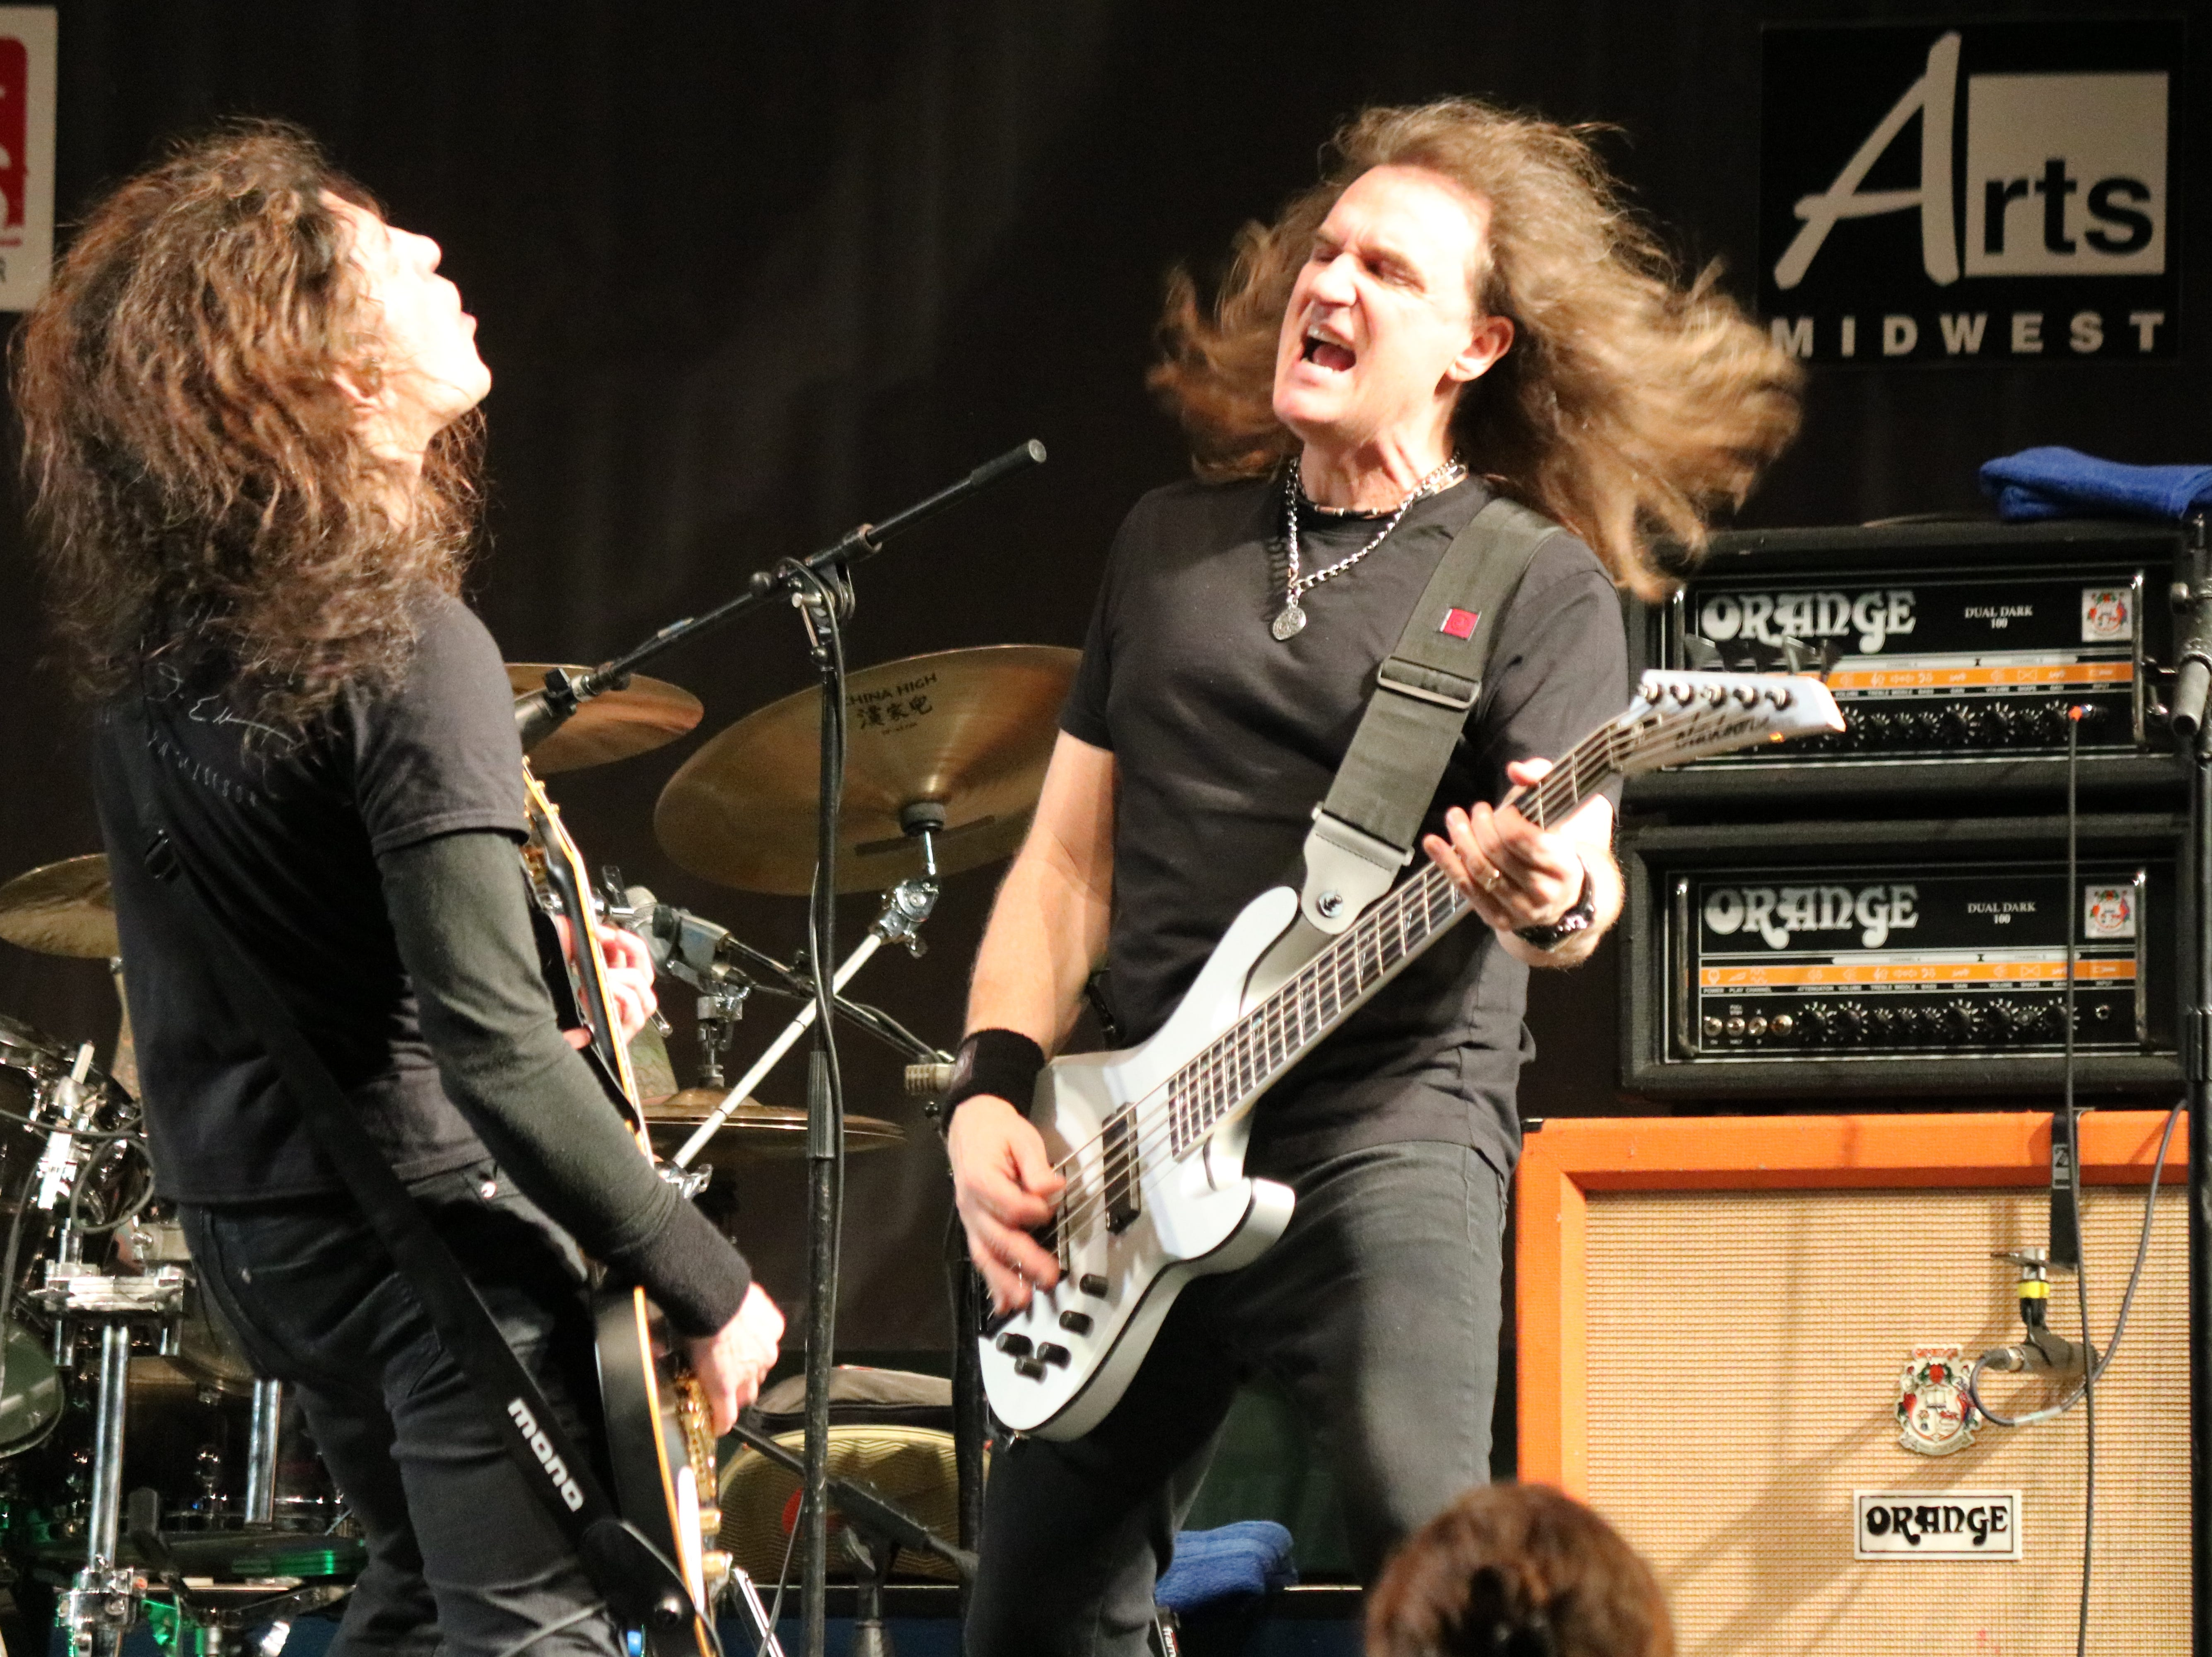 Legendary bassists Frank Bello of Anthrax and David Ellefson of Megadeth rocked the stage as Altitudes & Attitude at the 2019 Midwest Rhythm Summit at Terra State Community College on Saturday.